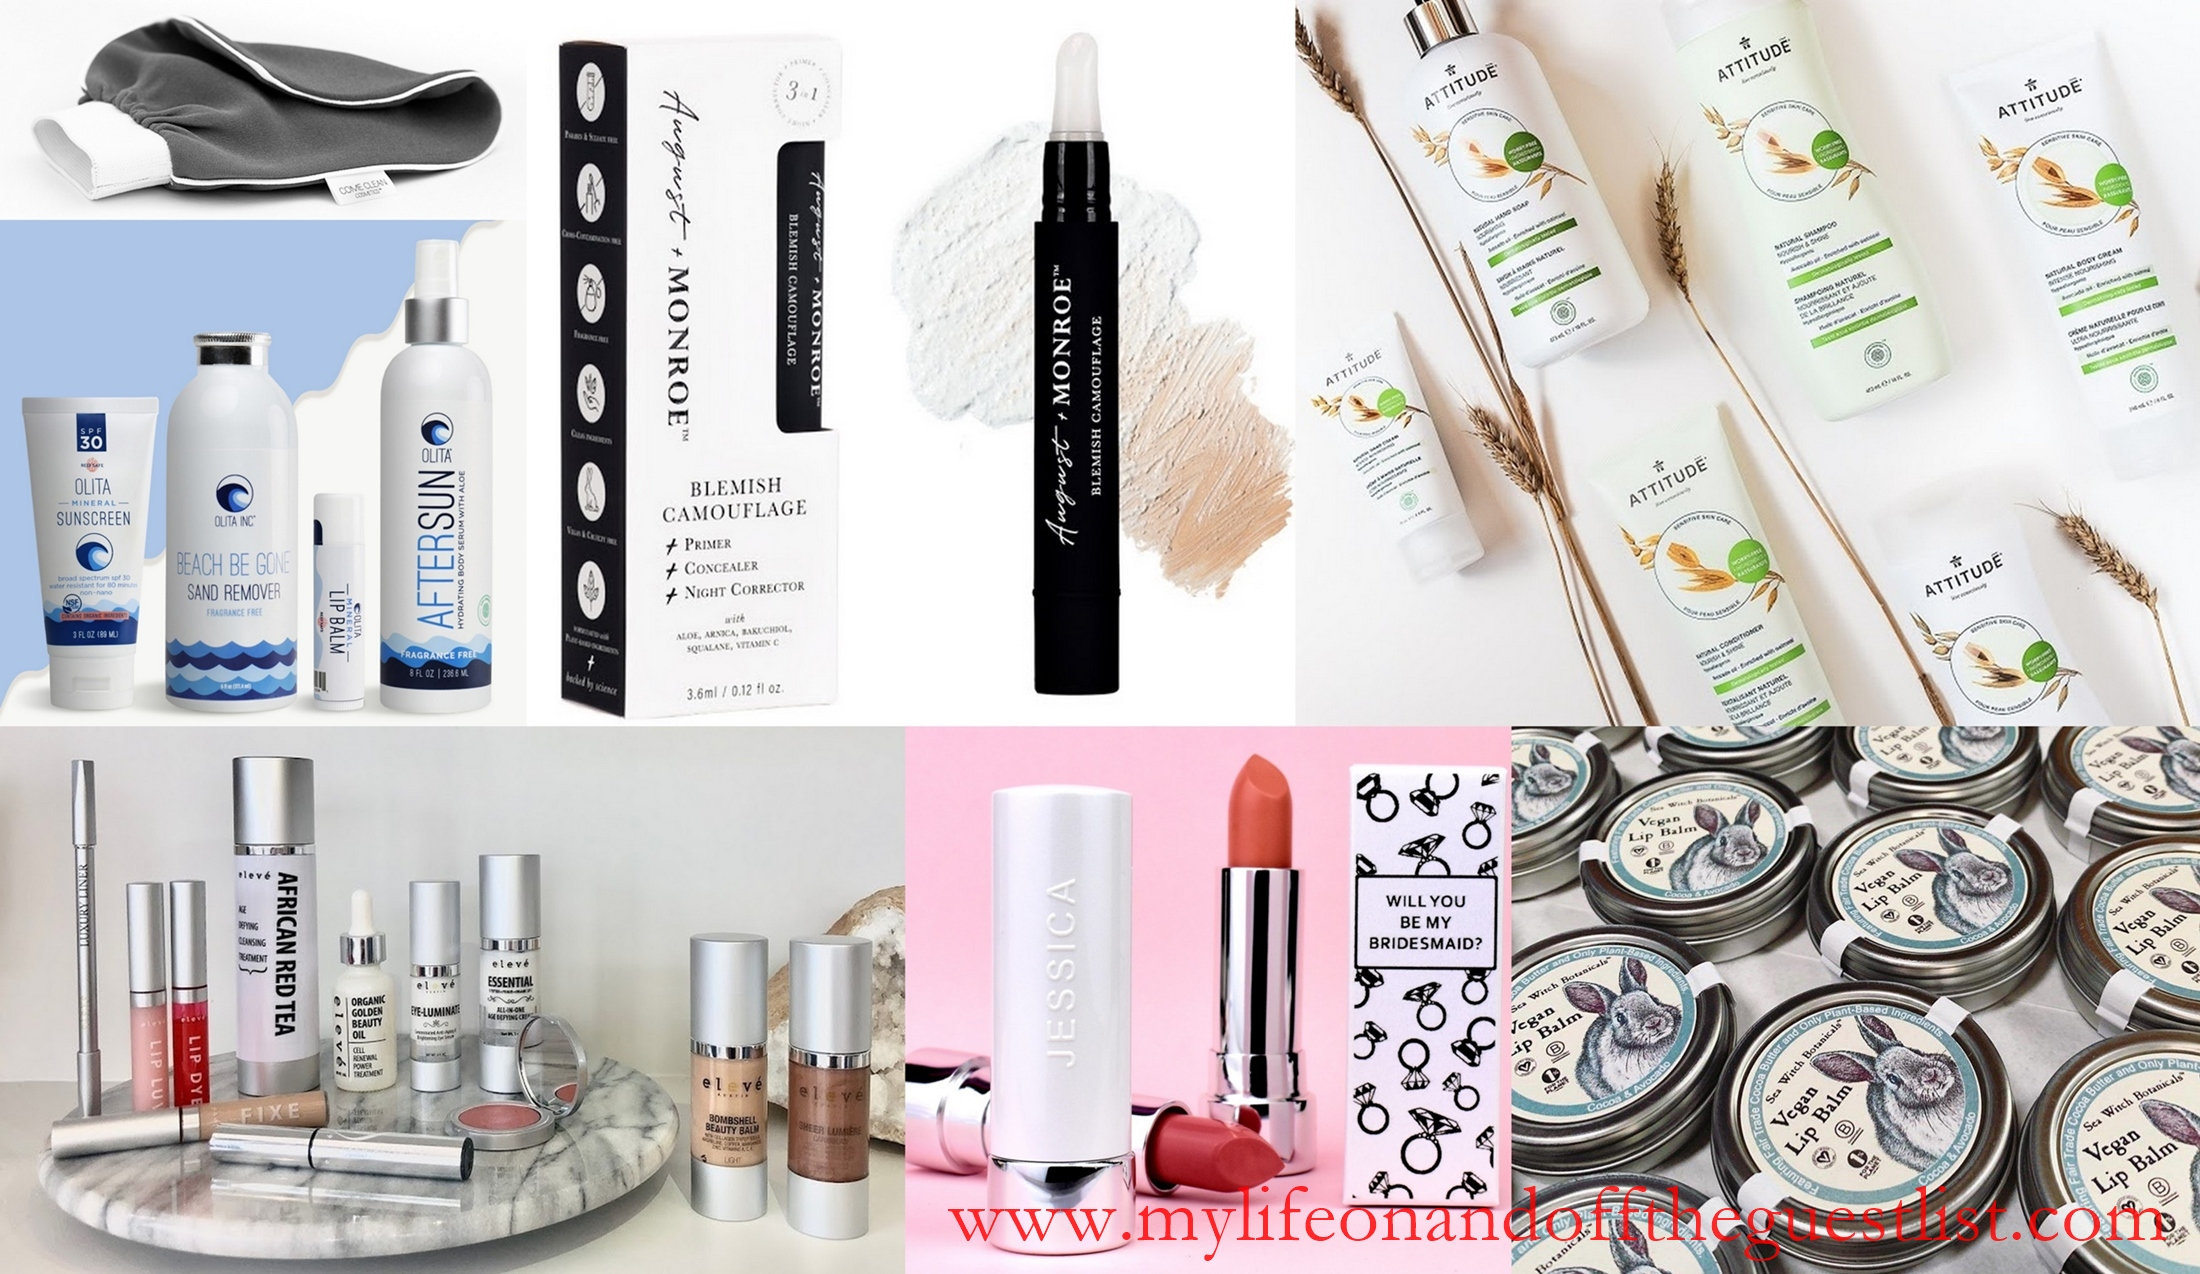 National Clean Beauty Day: Clean Beauty Products To Feel Good About